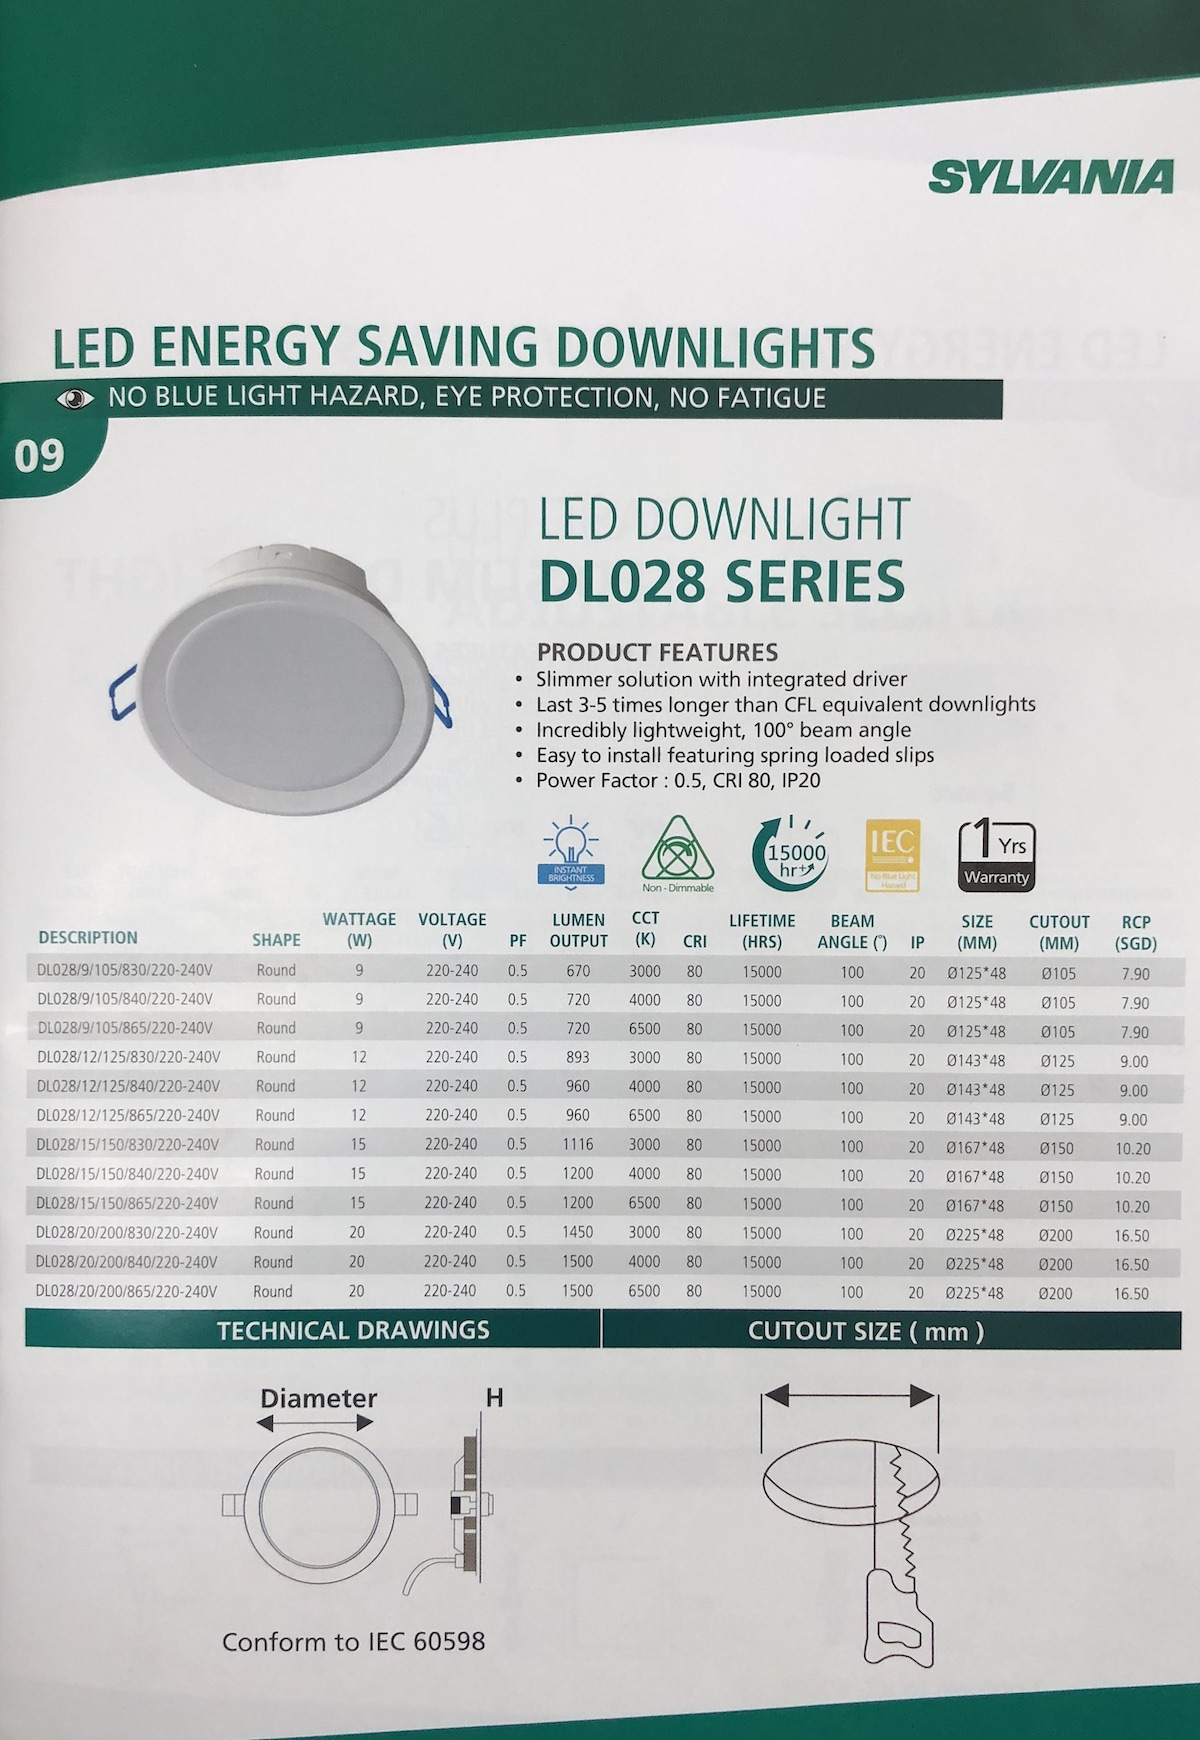 sylvania-led-downlight-dl028-brochure-sembawang-lighting-house.jpg